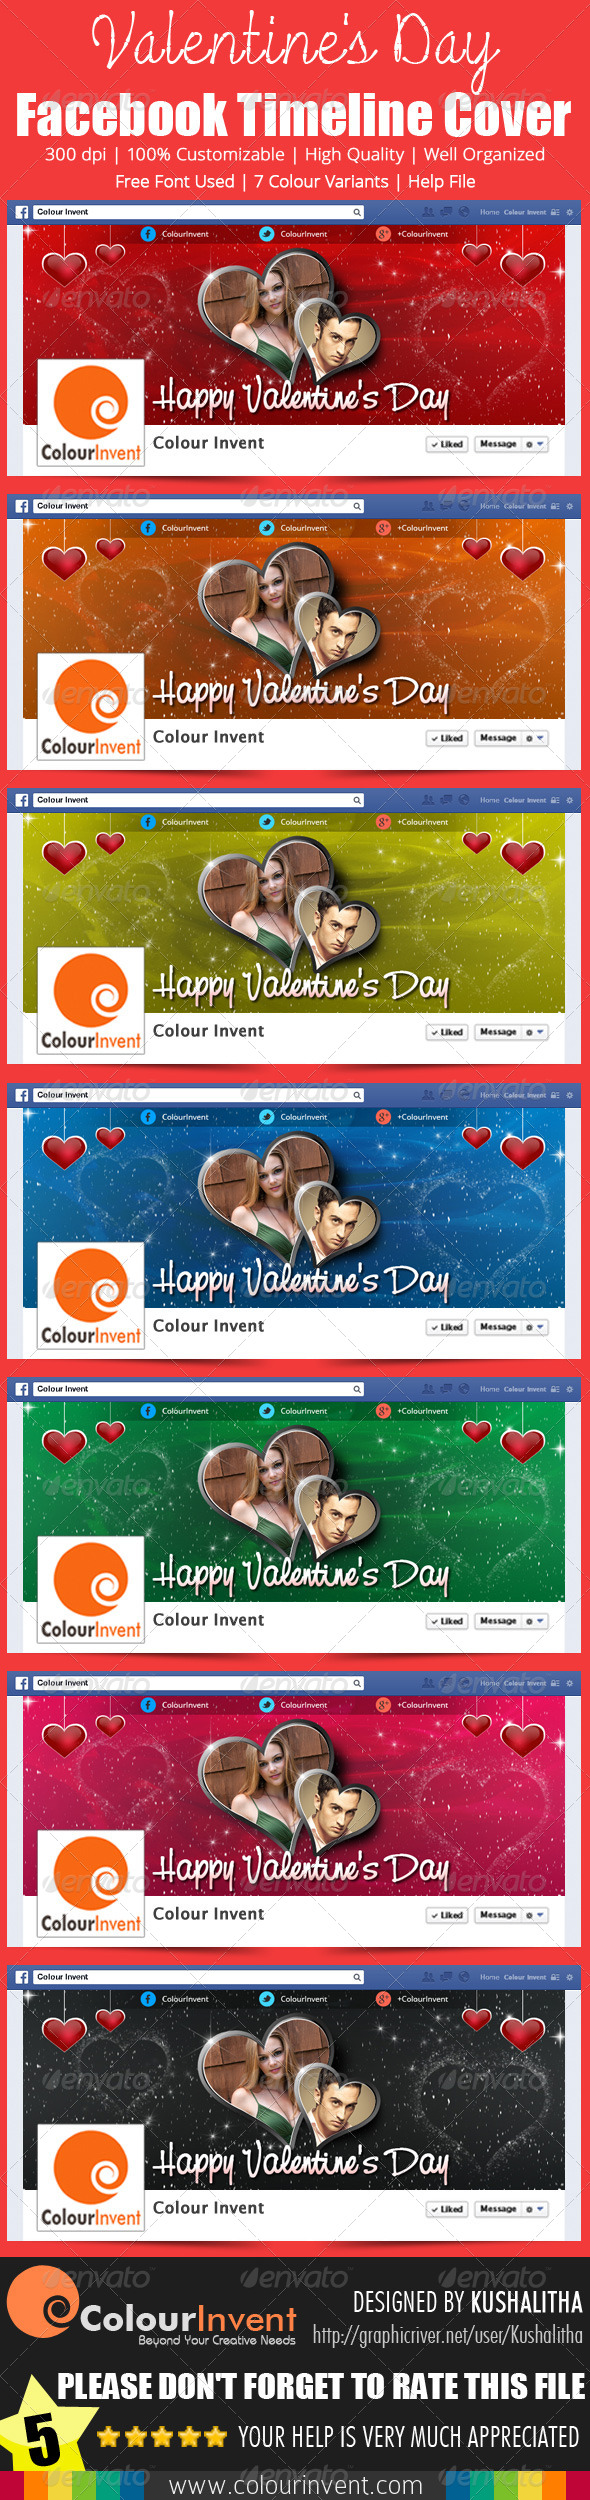 Valentine's Day Facebook Cover - Facebook Timeline Covers Social Media